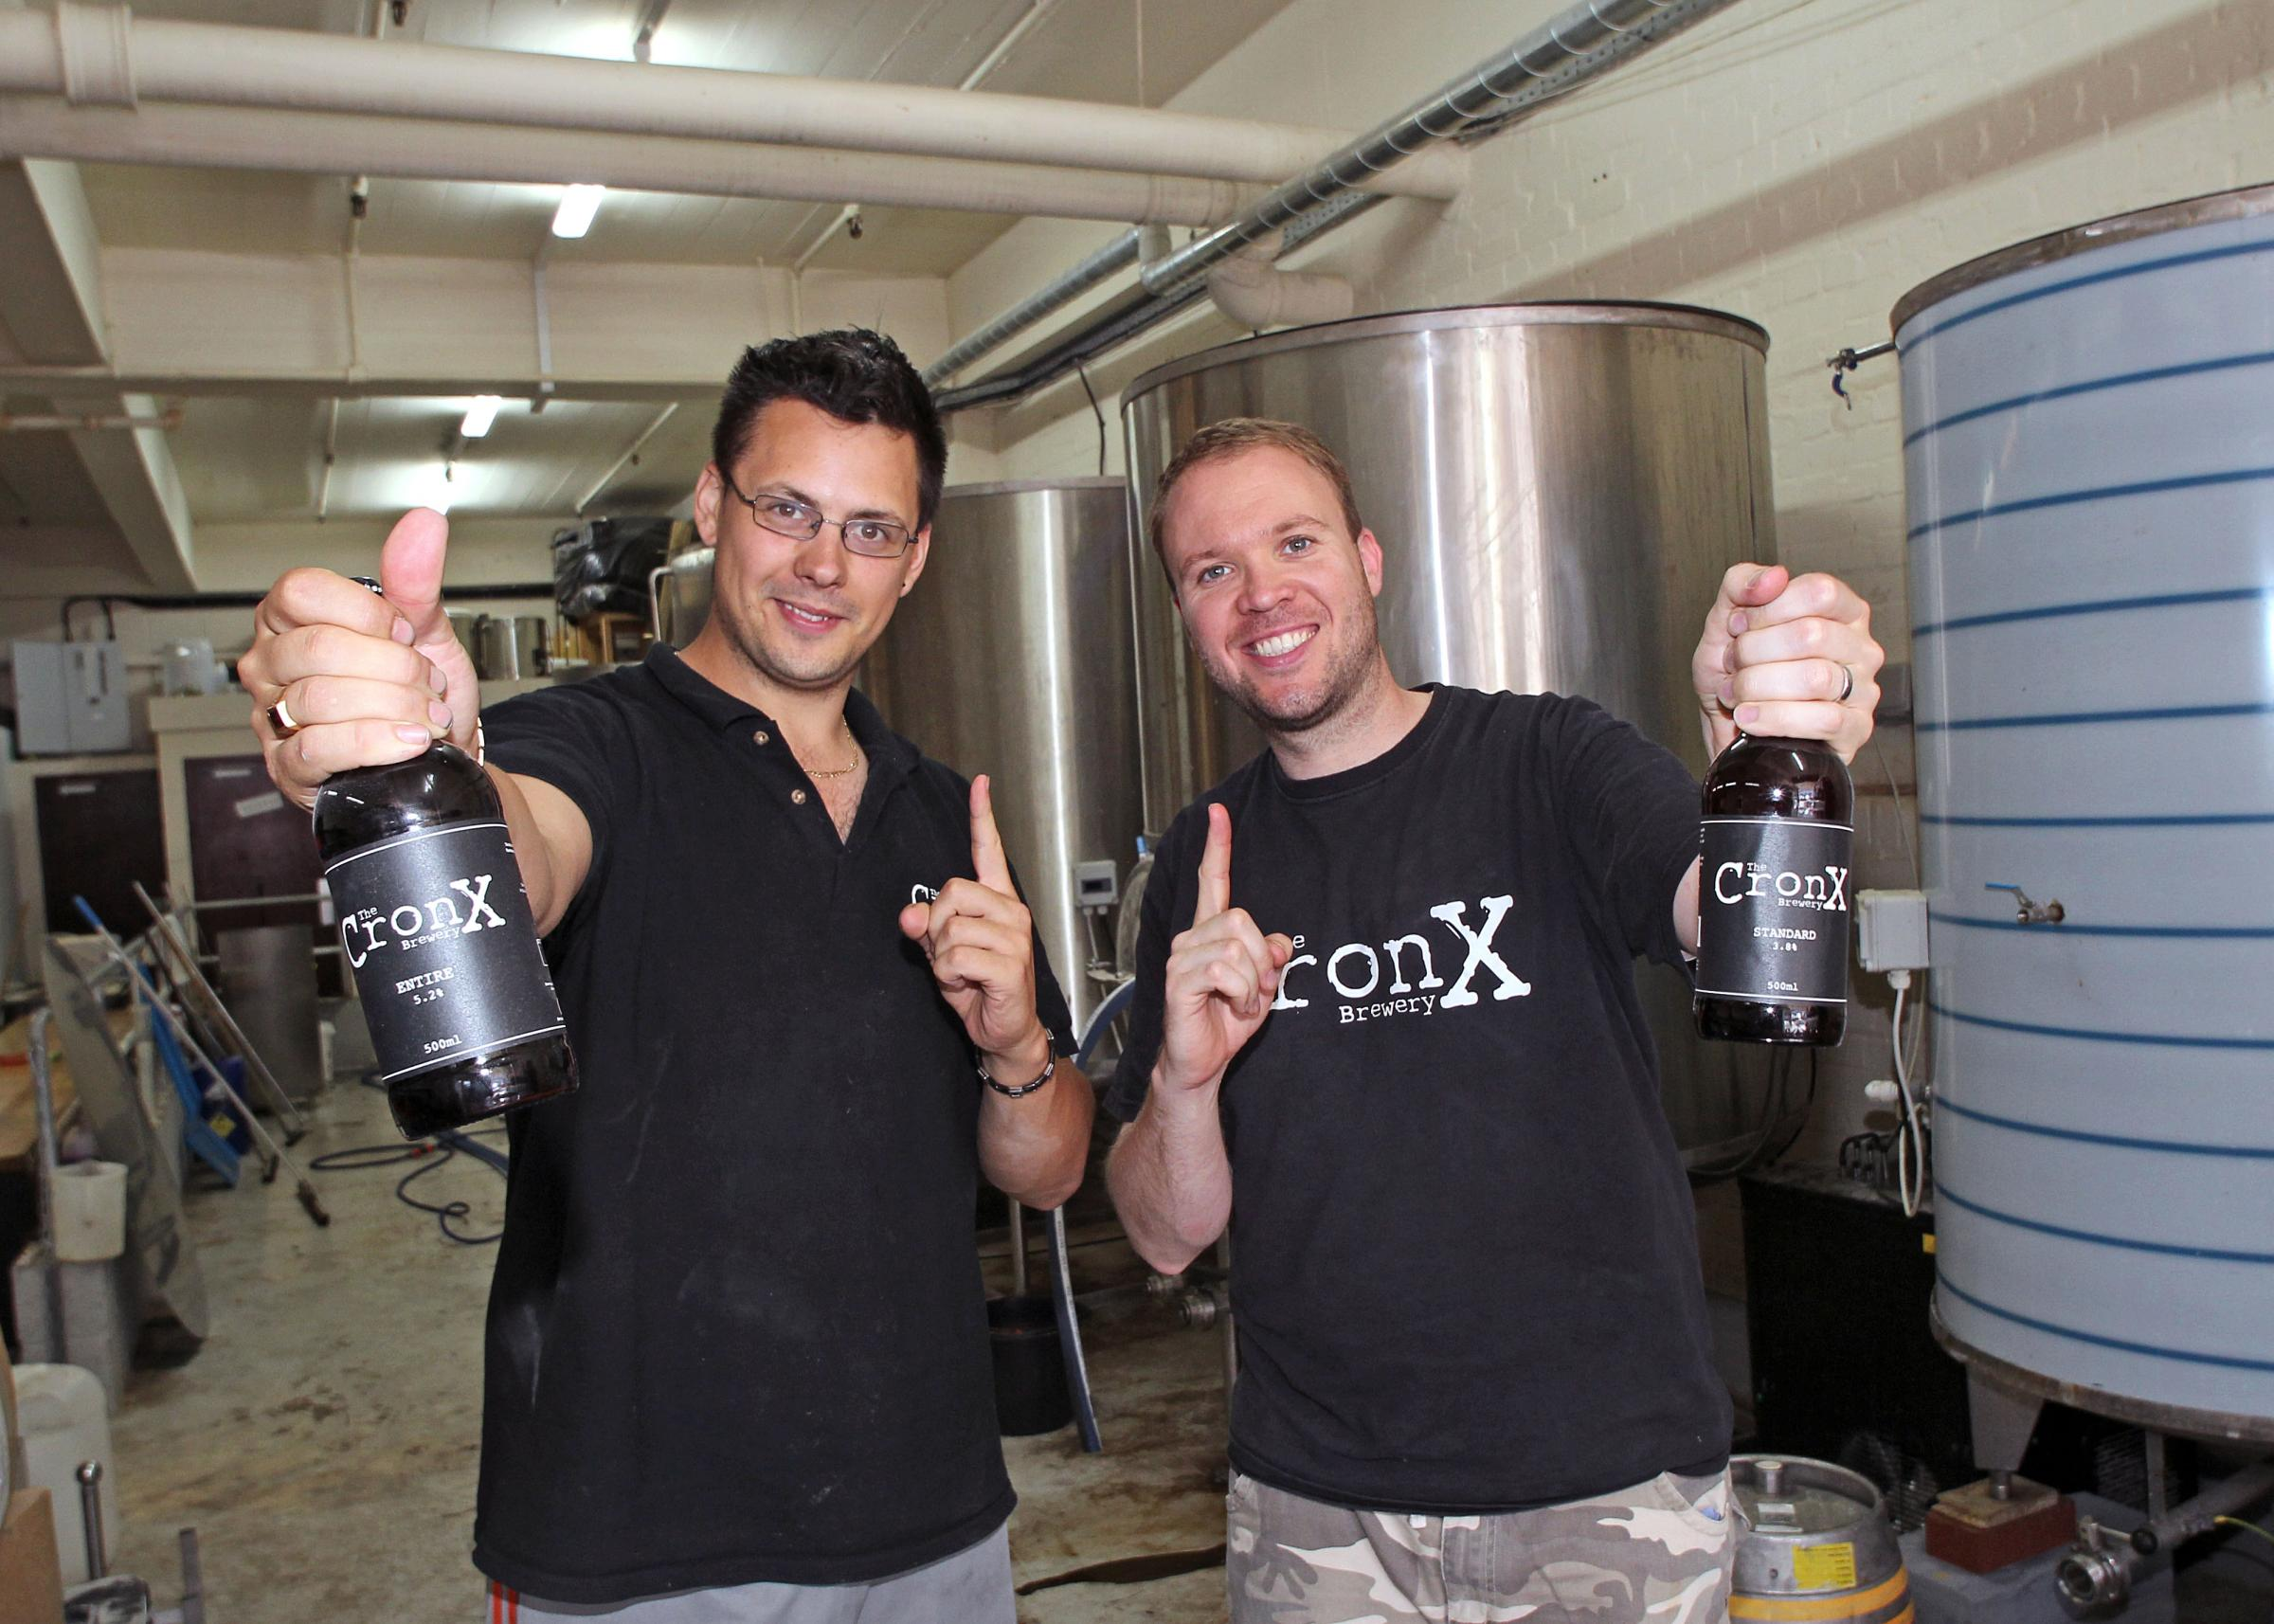 Mark Russell and Simon Dale, the Cronx brewers